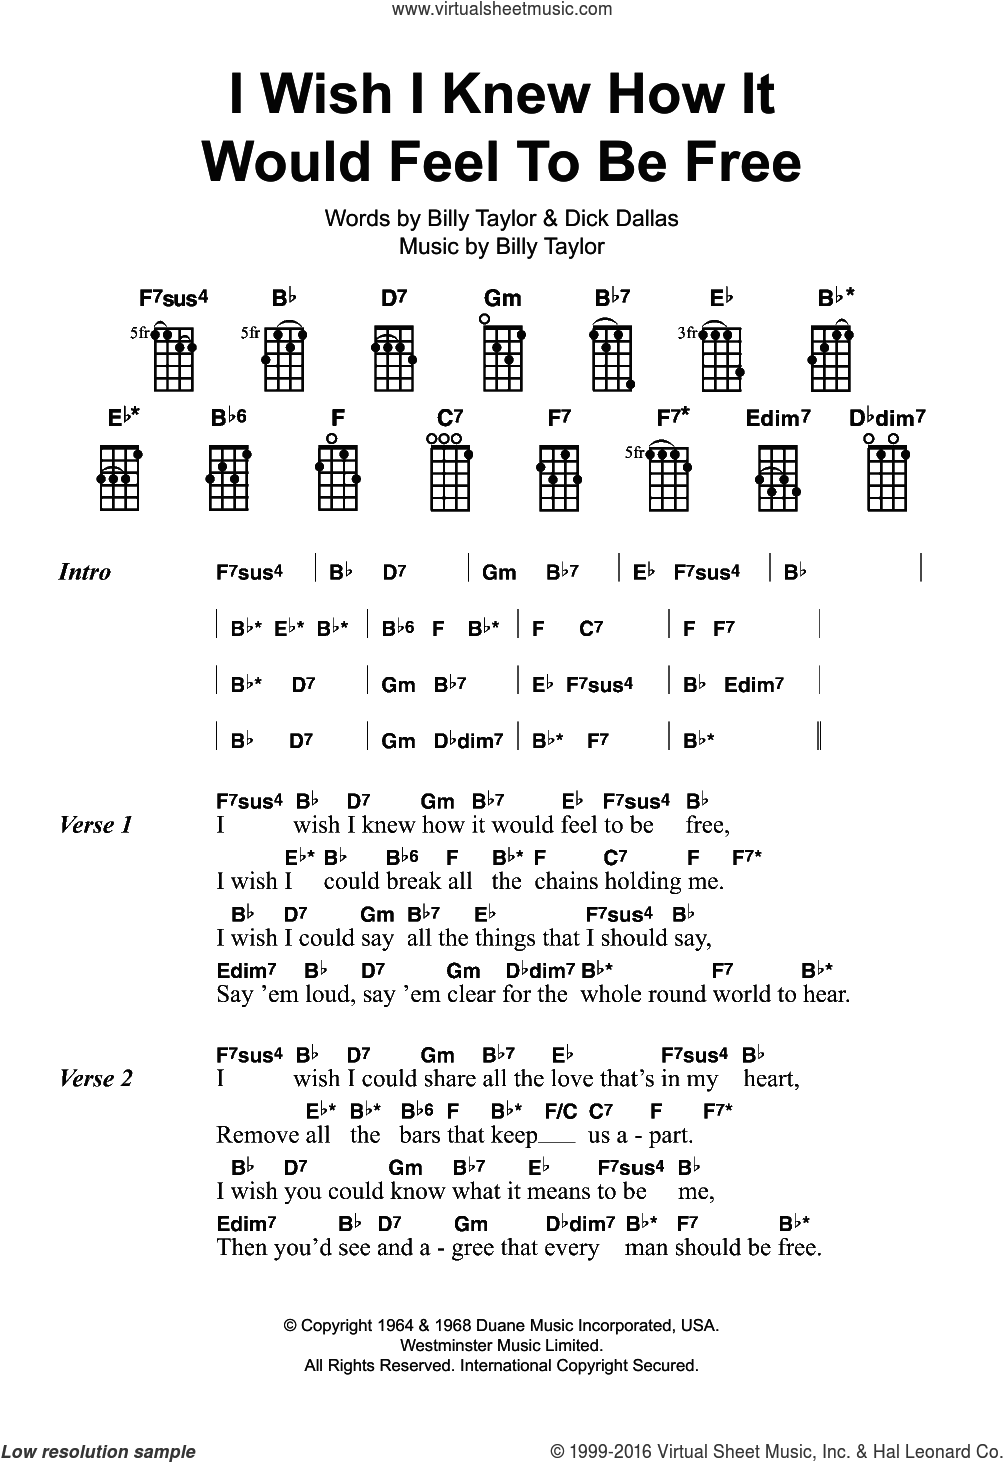 I Wish I Knew How It Would Feel To Be Free sheet music for ukulele by Billy Taylor and Nina Simone. Score Image Preview.